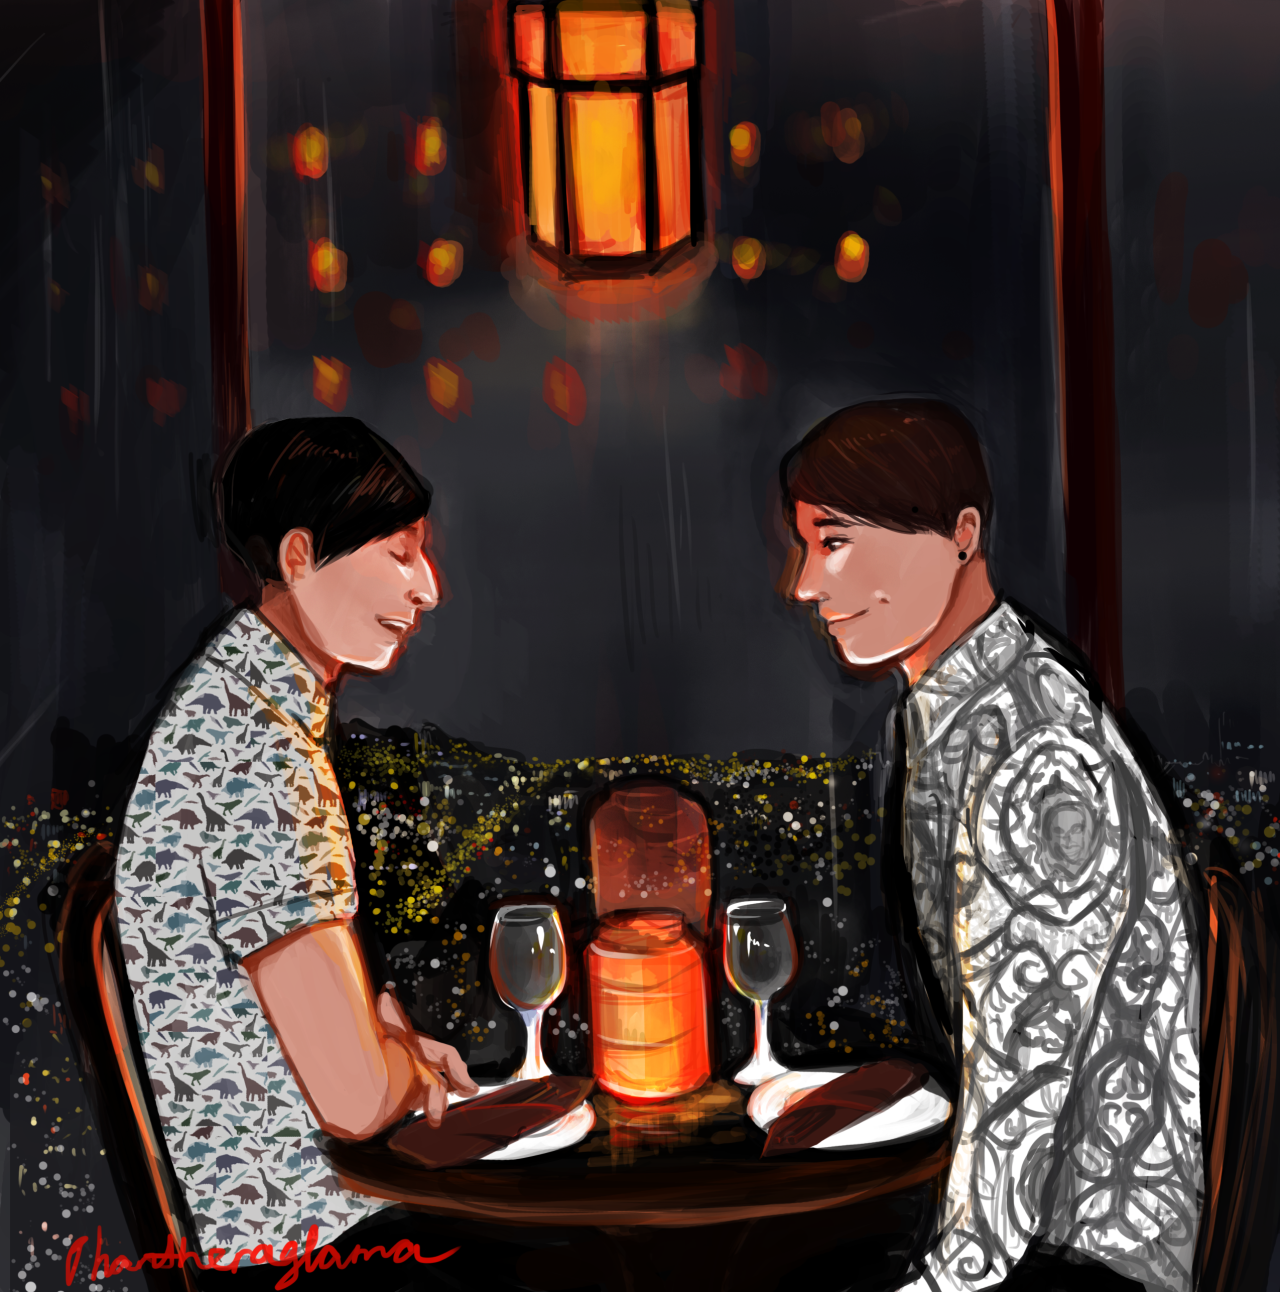 table for two by phantheraglama THIS IS THE BEST ARTIST IN THIS FANDOM I NEED CPR<<< LITERALLY ME